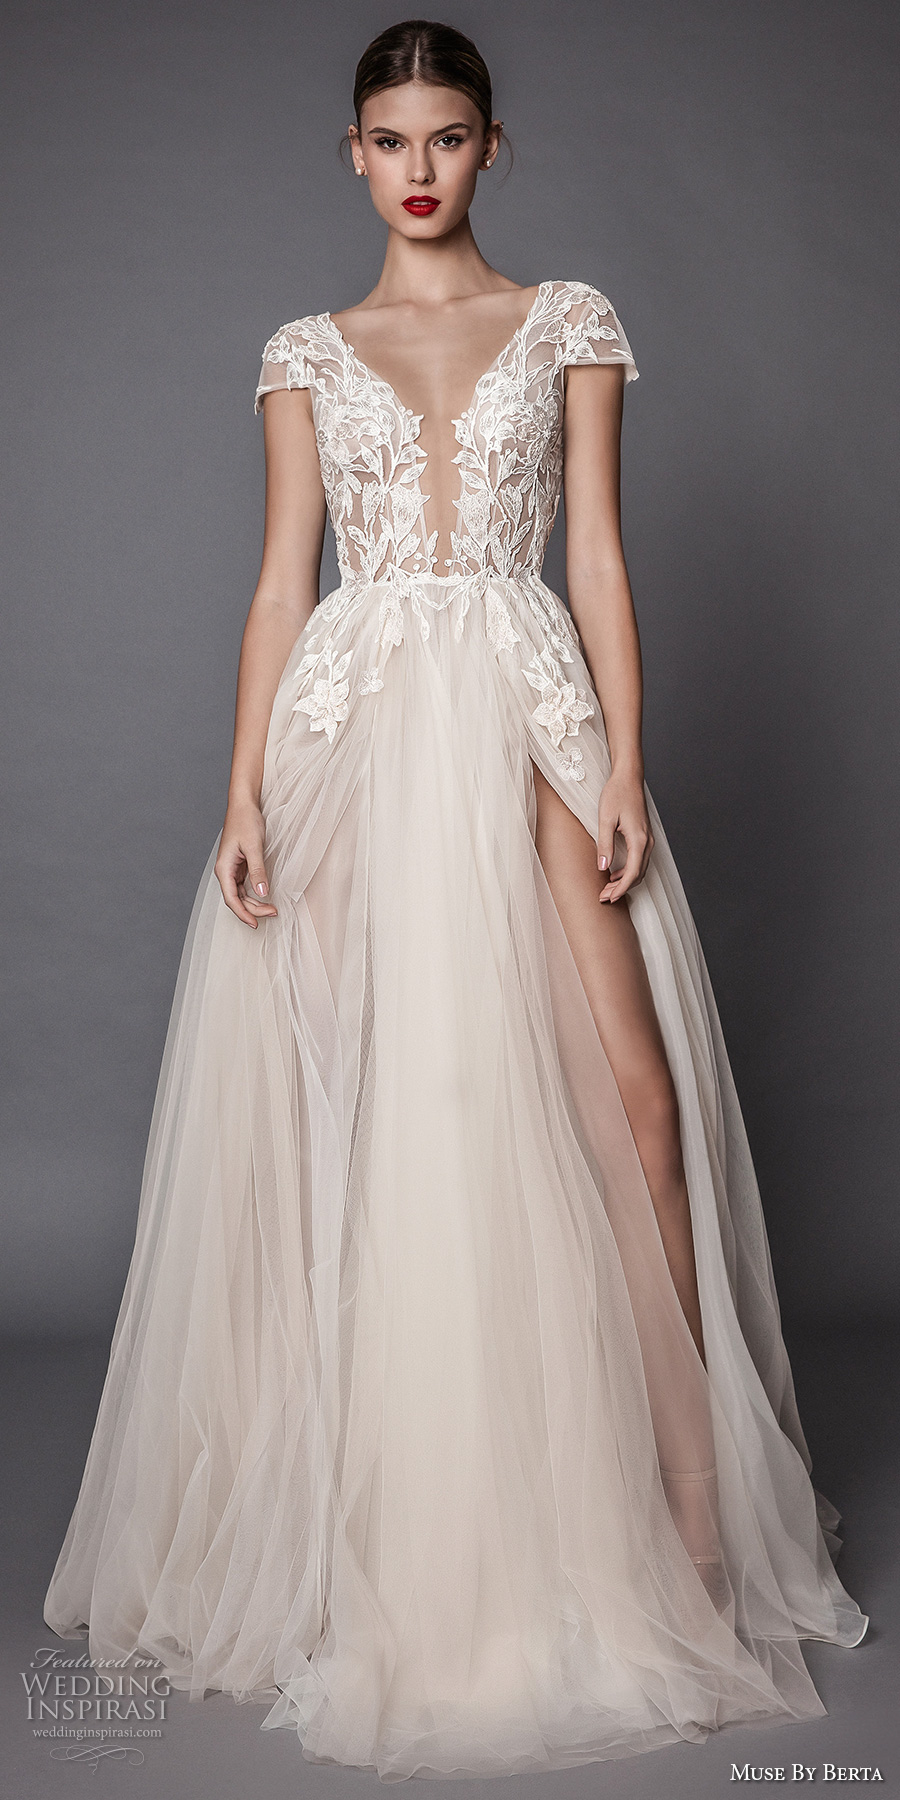 Muse By Berta Fall 2017 Wedding Dresses Part 1 Crazyforus